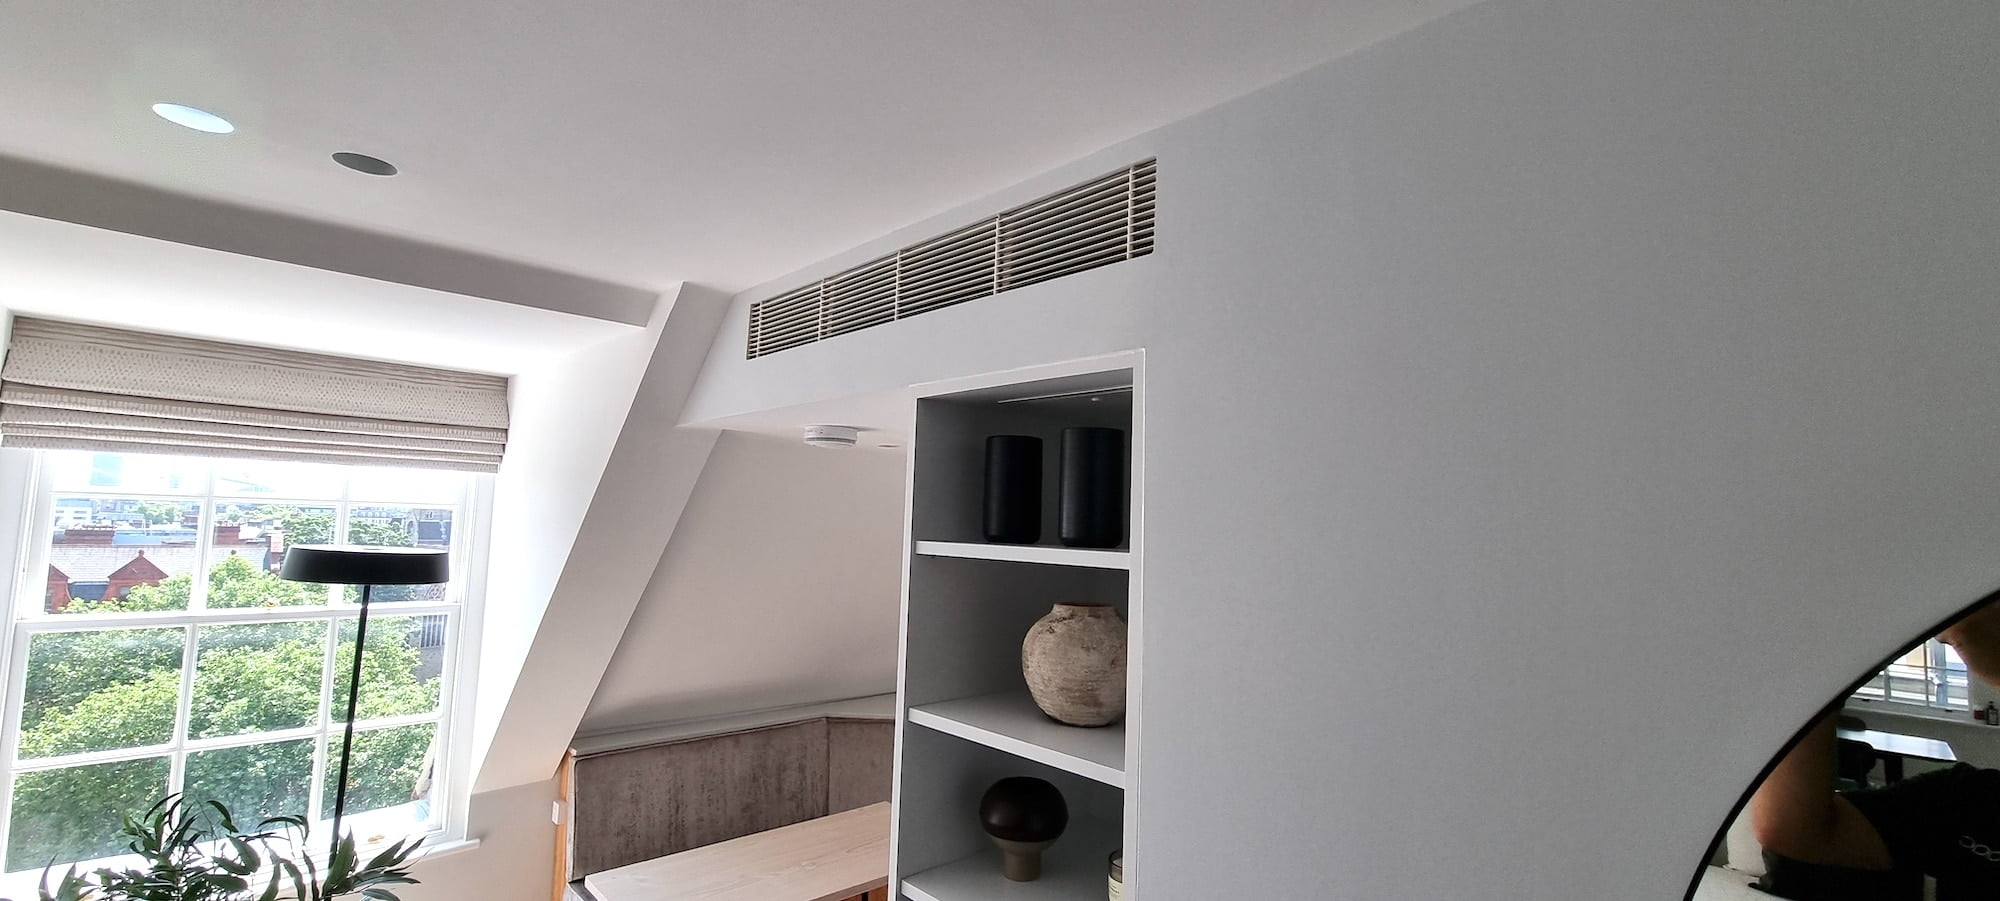 AAC Blogs - What is the best air conditioning system to buy?